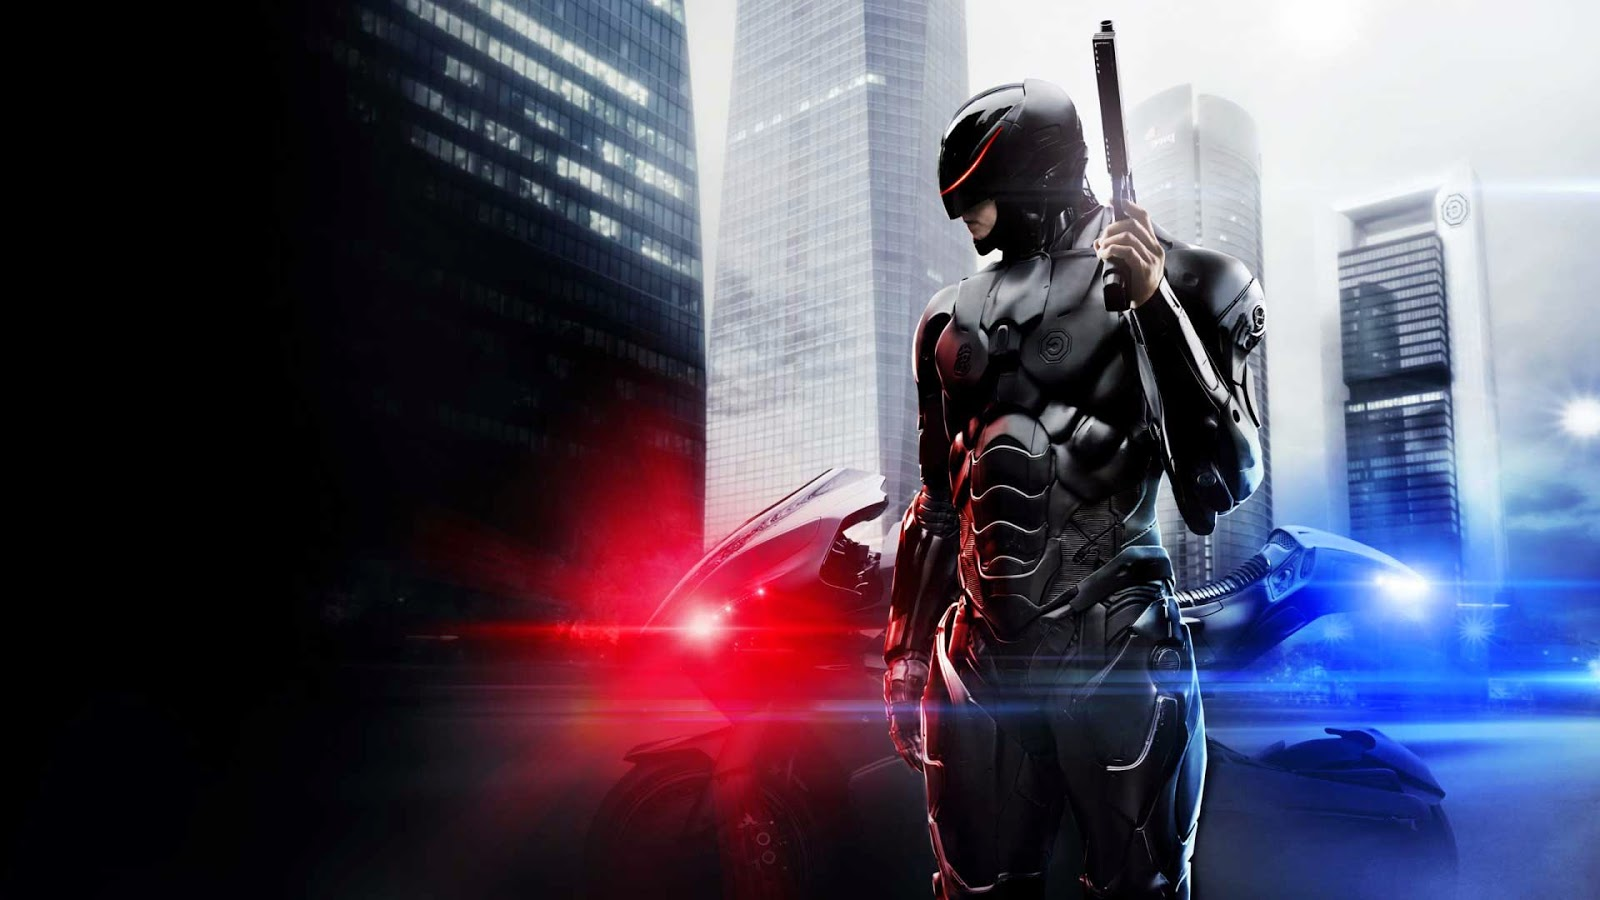 Robocop 2013 Trailer #2 Official - 2014 Movie [HD] - YouTube